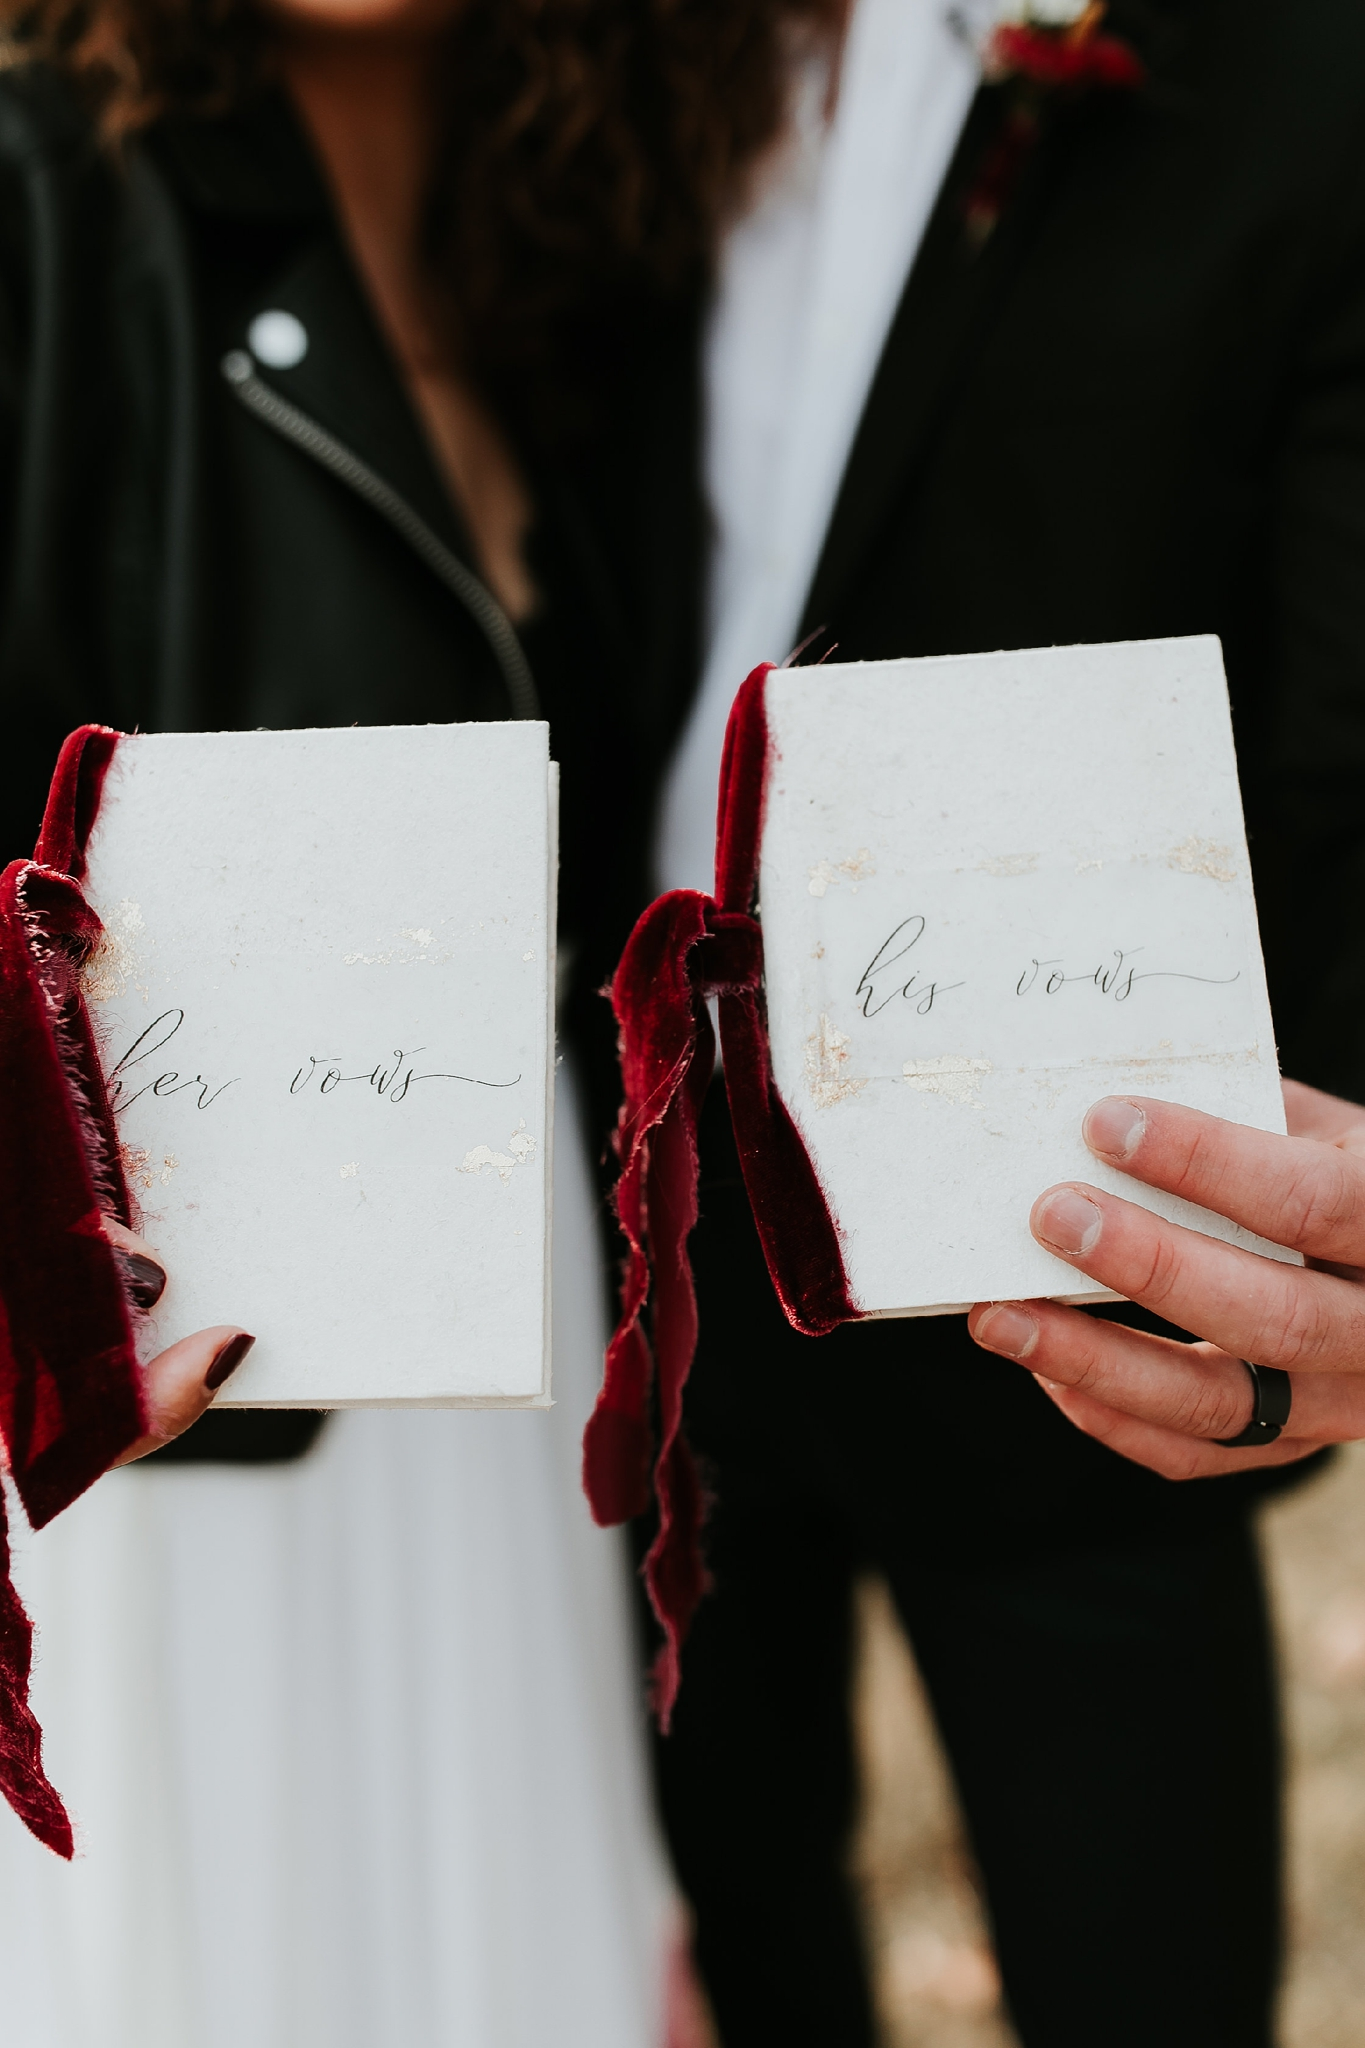 Alicia+lucia+photography+-+albuquerque+wedding+photographer+-+santa+fe+wedding+photography+-+new+mexico+wedding+photographer+-+new+mexico+wedding+-+wedding+vows+-+writing+your+own+vows+-+wedding+inspo_0041.jpg